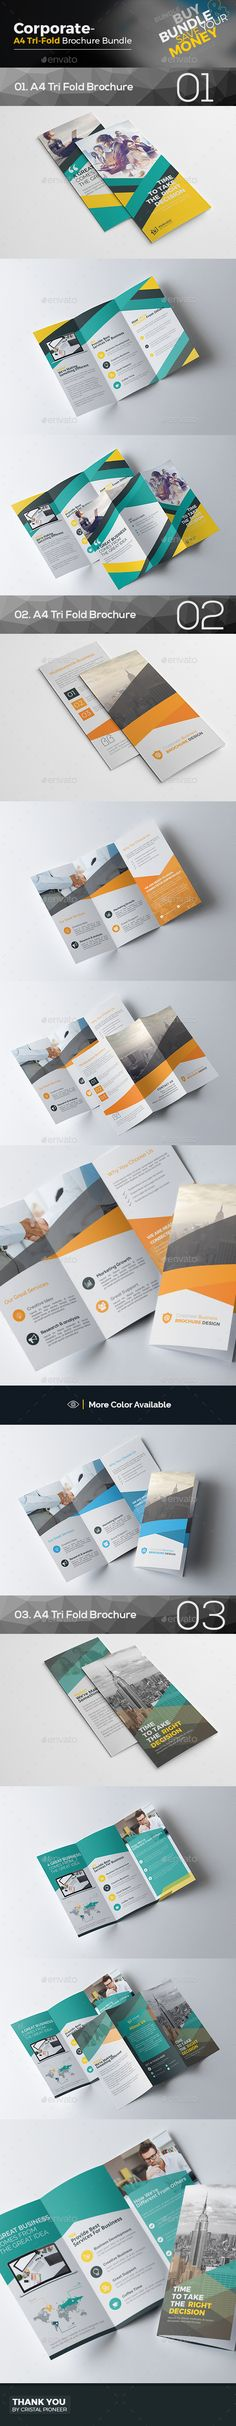 tri fold brochure design bundle 3 in 1 corporate brochure template vector eps ai illustrator download here httpgraphicrivernetitemtri fo